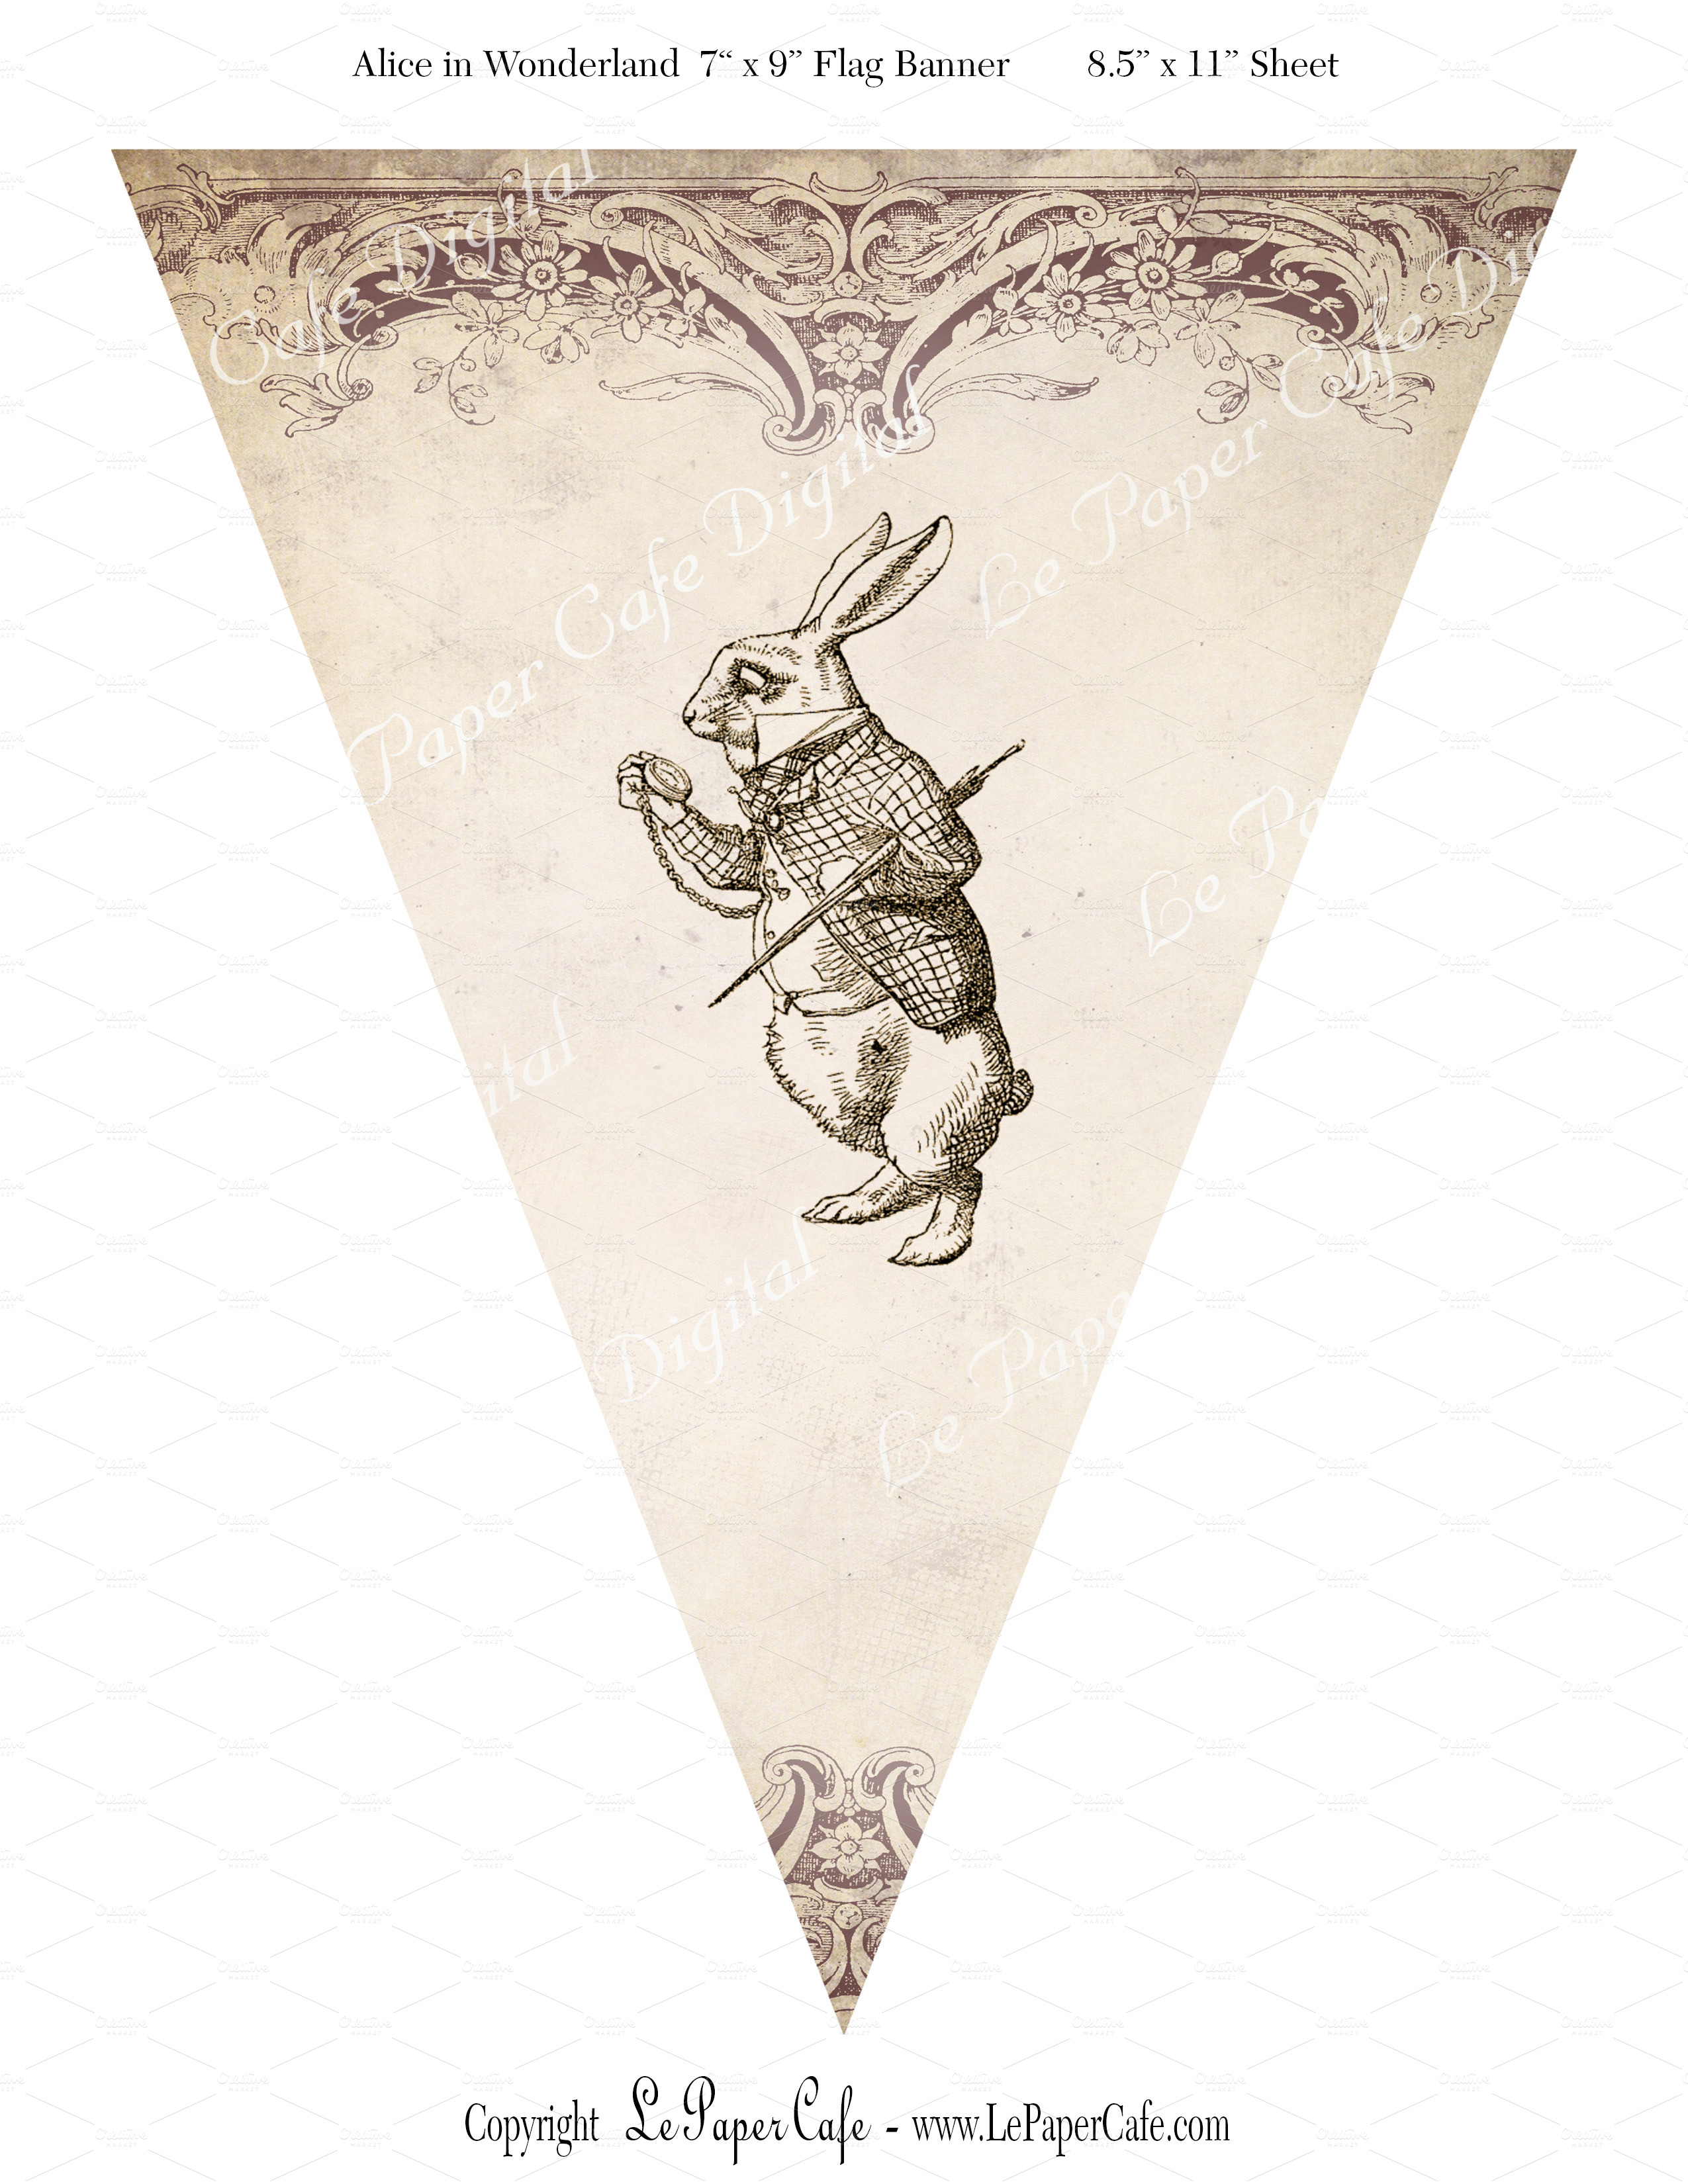 Alice in Wonderland Bunting Flags  Objects on Creative Market